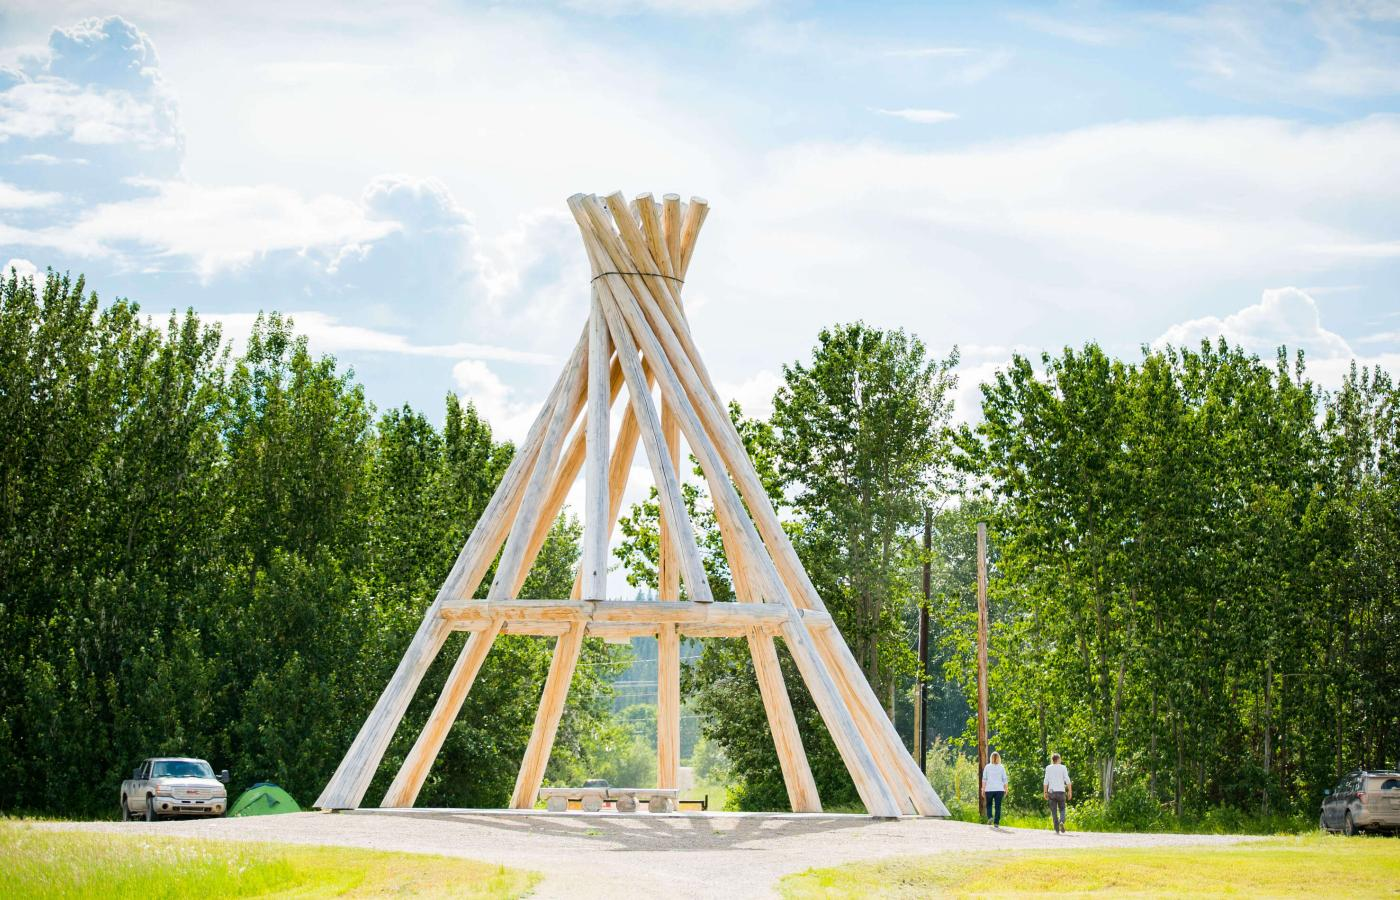 World's largest wooden tipi in Fort Simpson, NWT